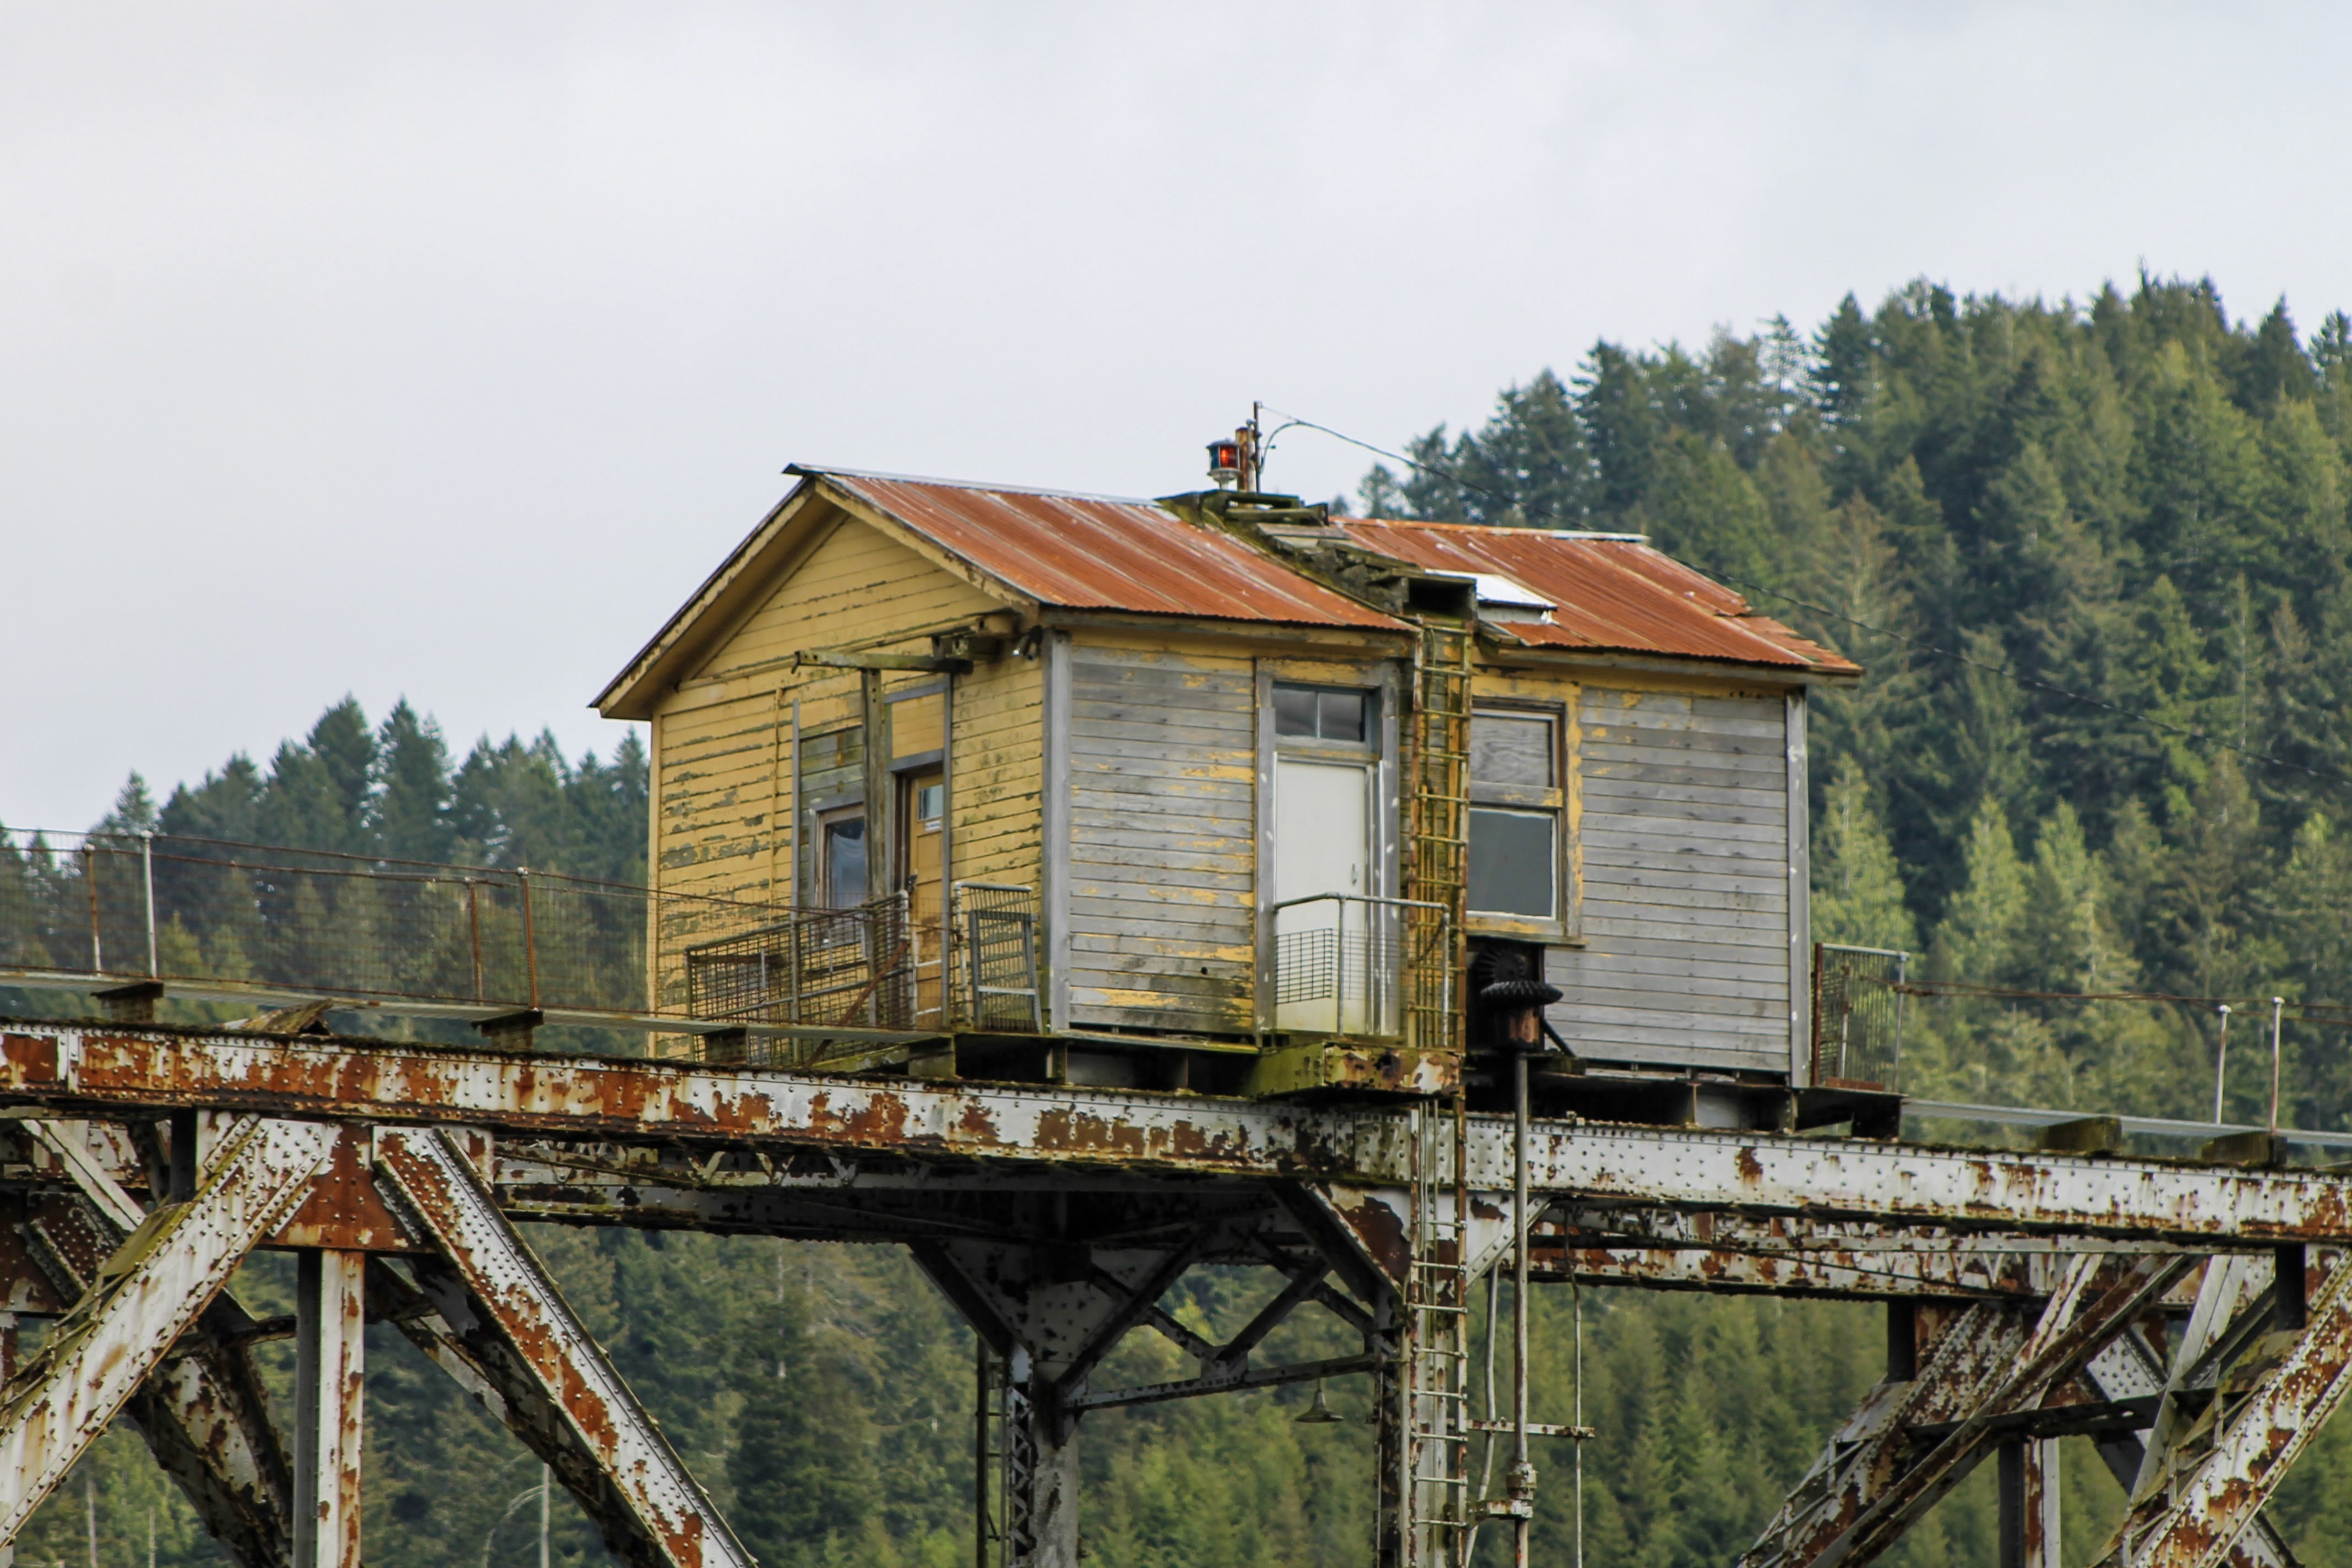 yellow and brown wooden house on rusted steel beams